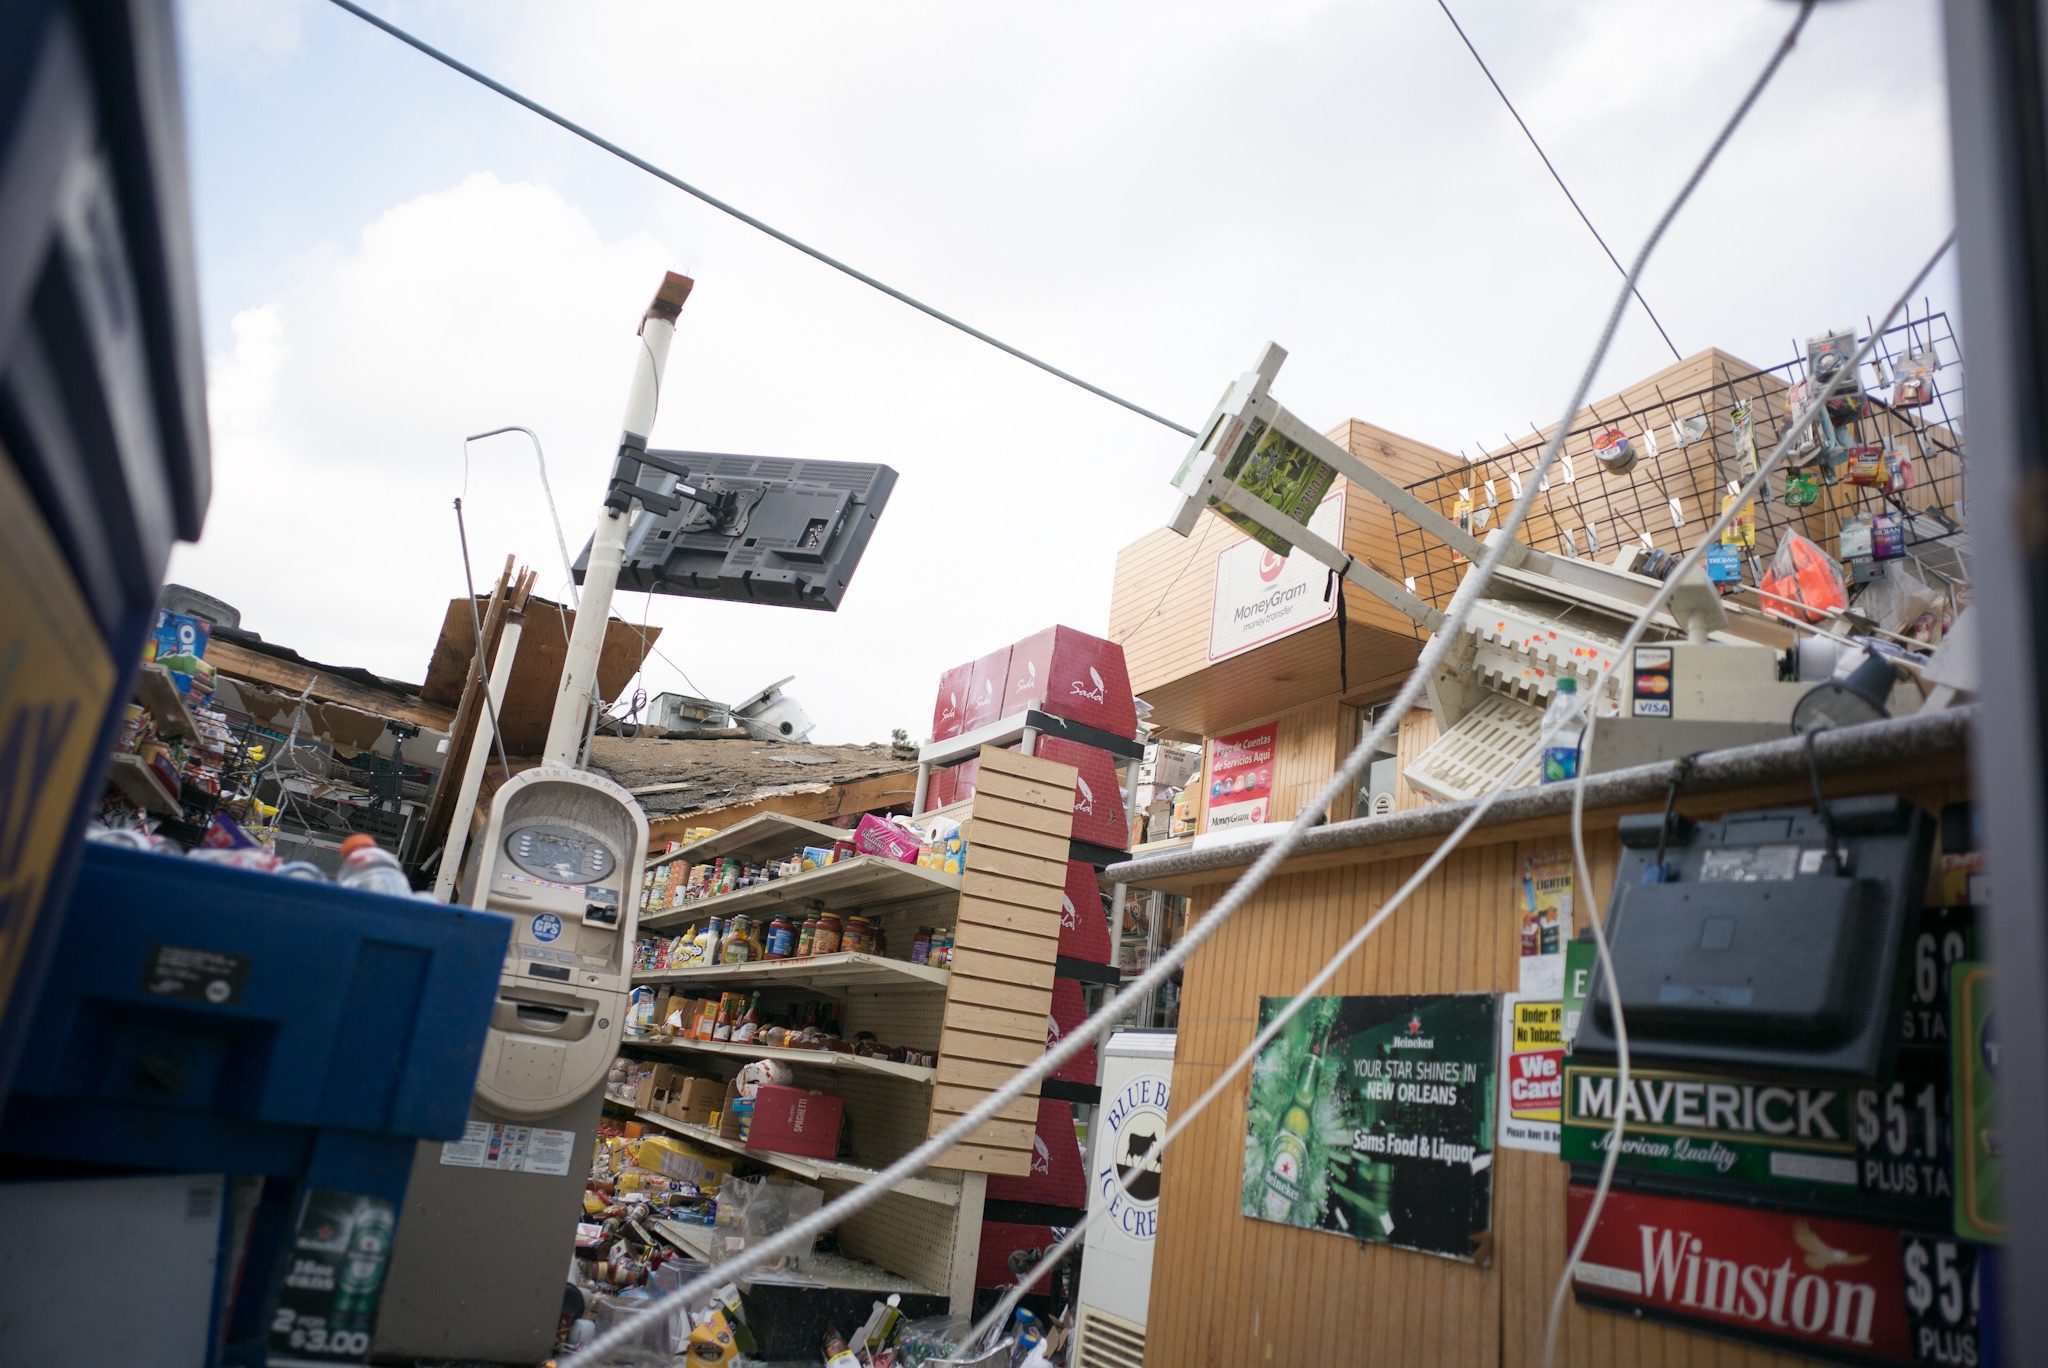 The roof of a convenience store was completely removed by the tornado.